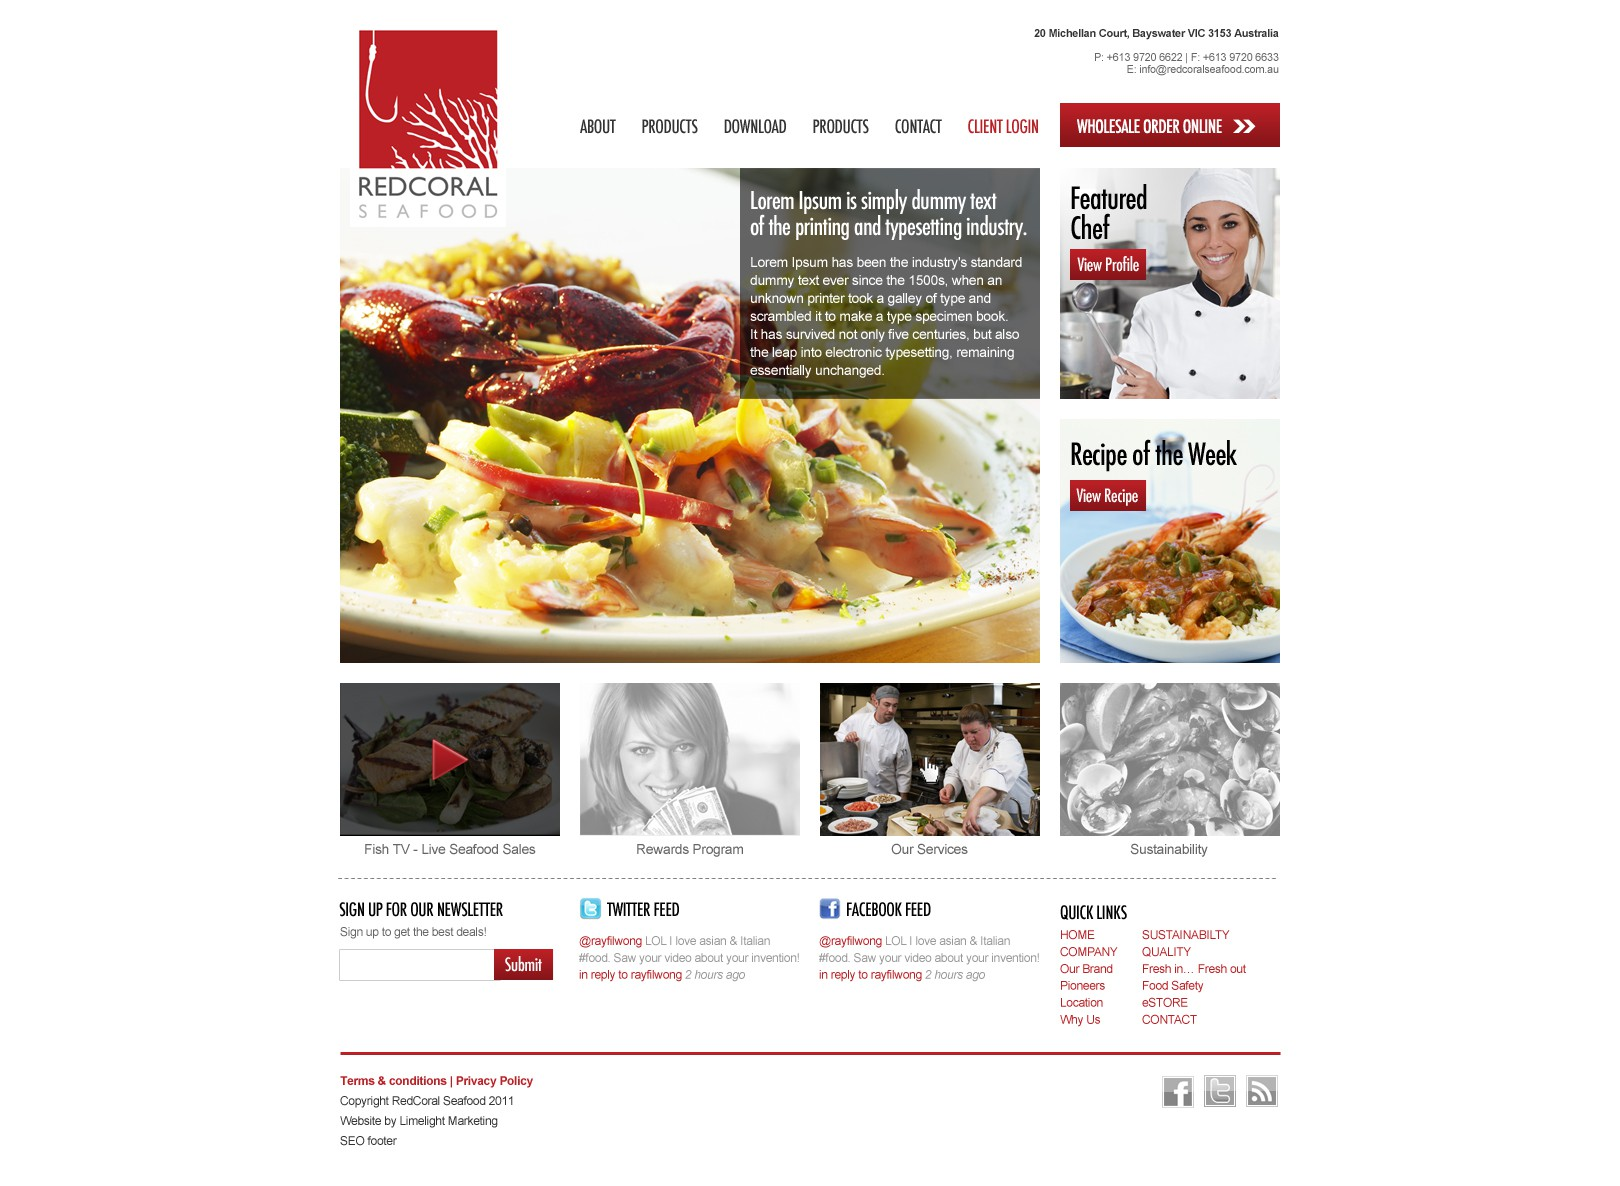 Red Coral Seafood needs a new website design